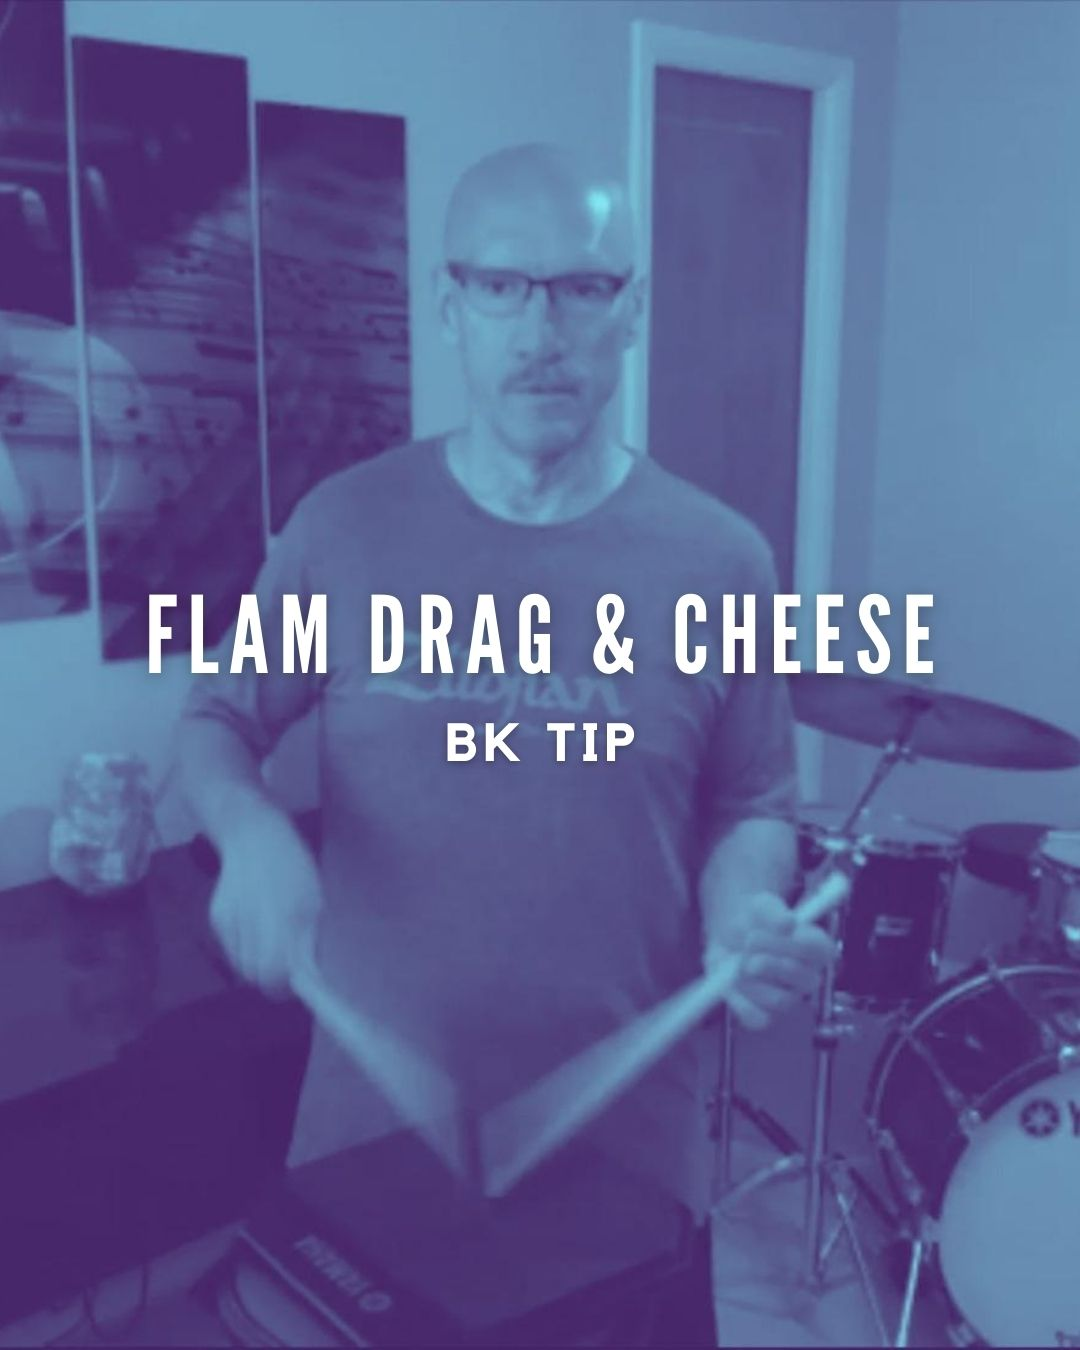 Flam Drag & Cheese